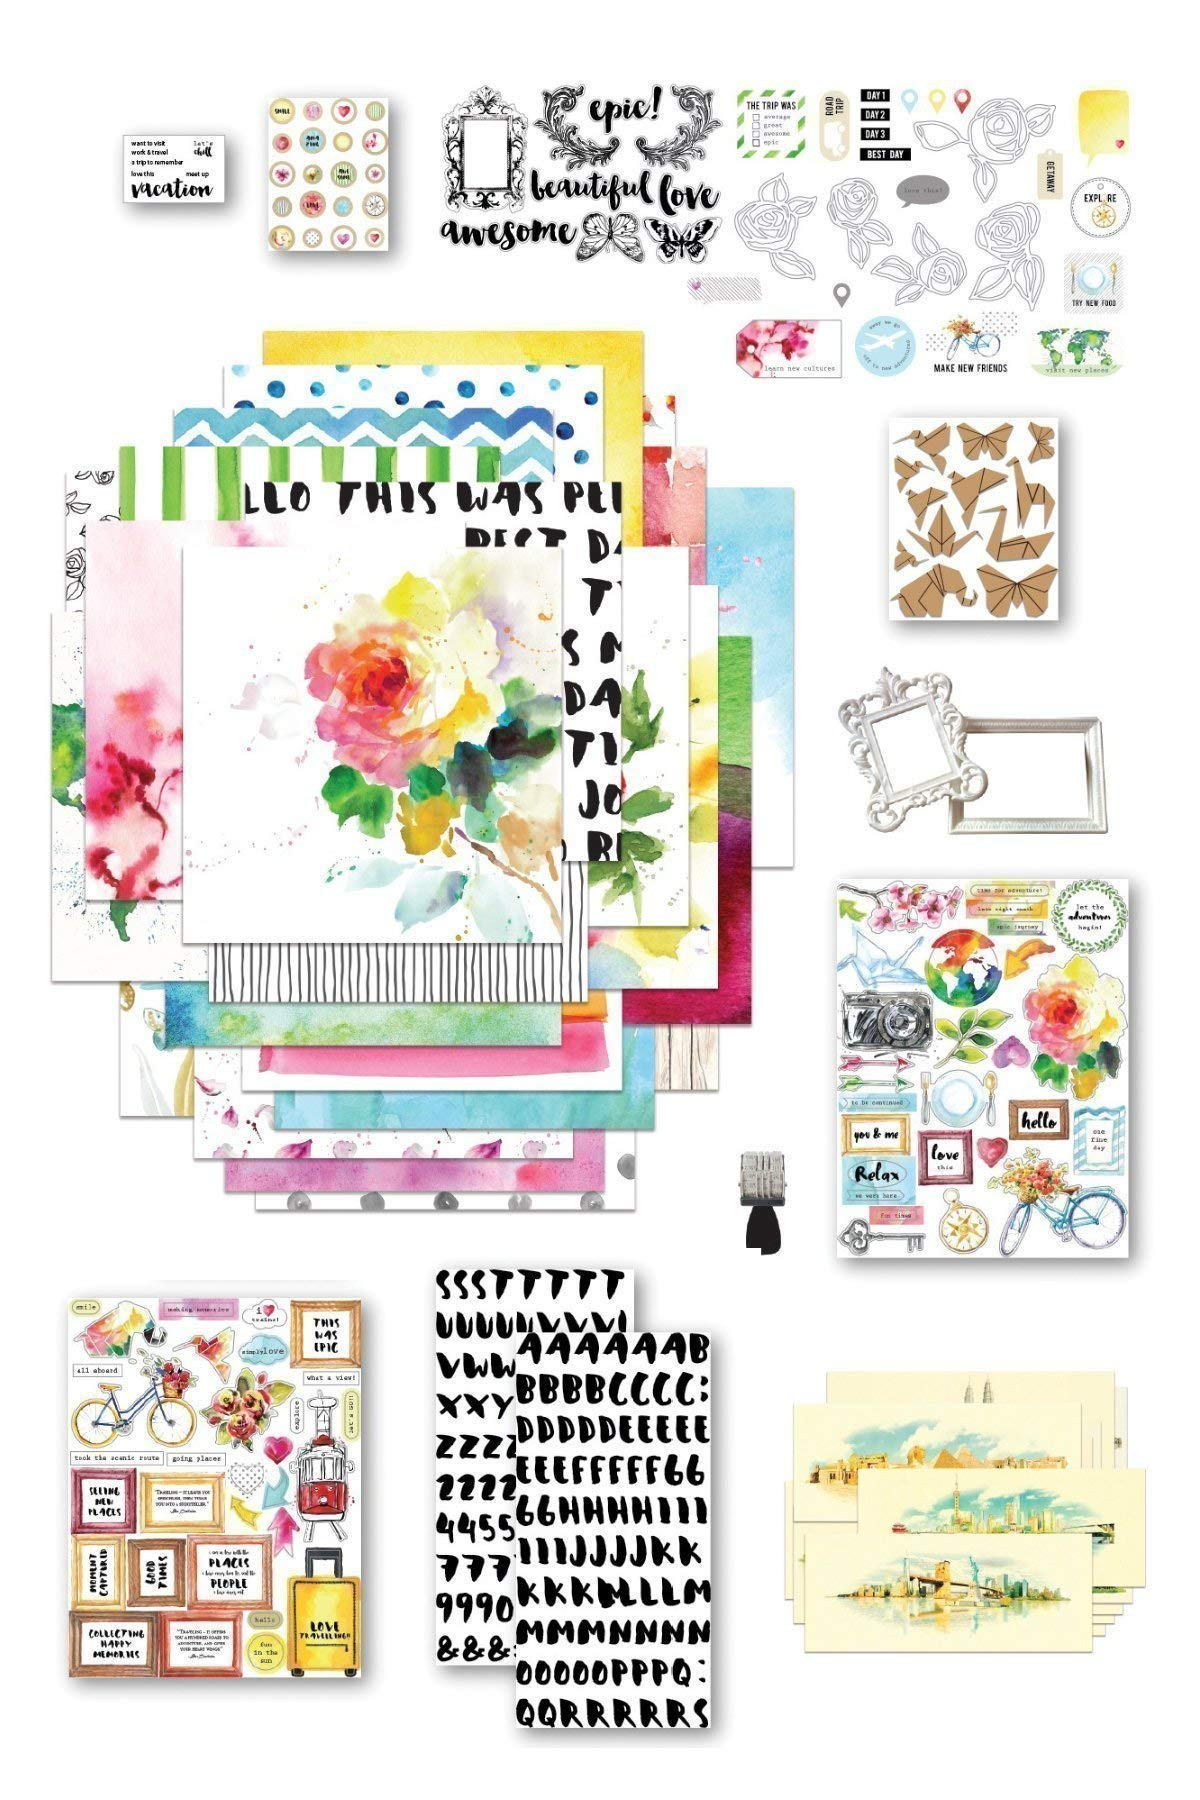 Altenew Reflection Scrapbook Collection - Complete Scrapbooking Kit Perfect For Starters and Seasoned Crafters